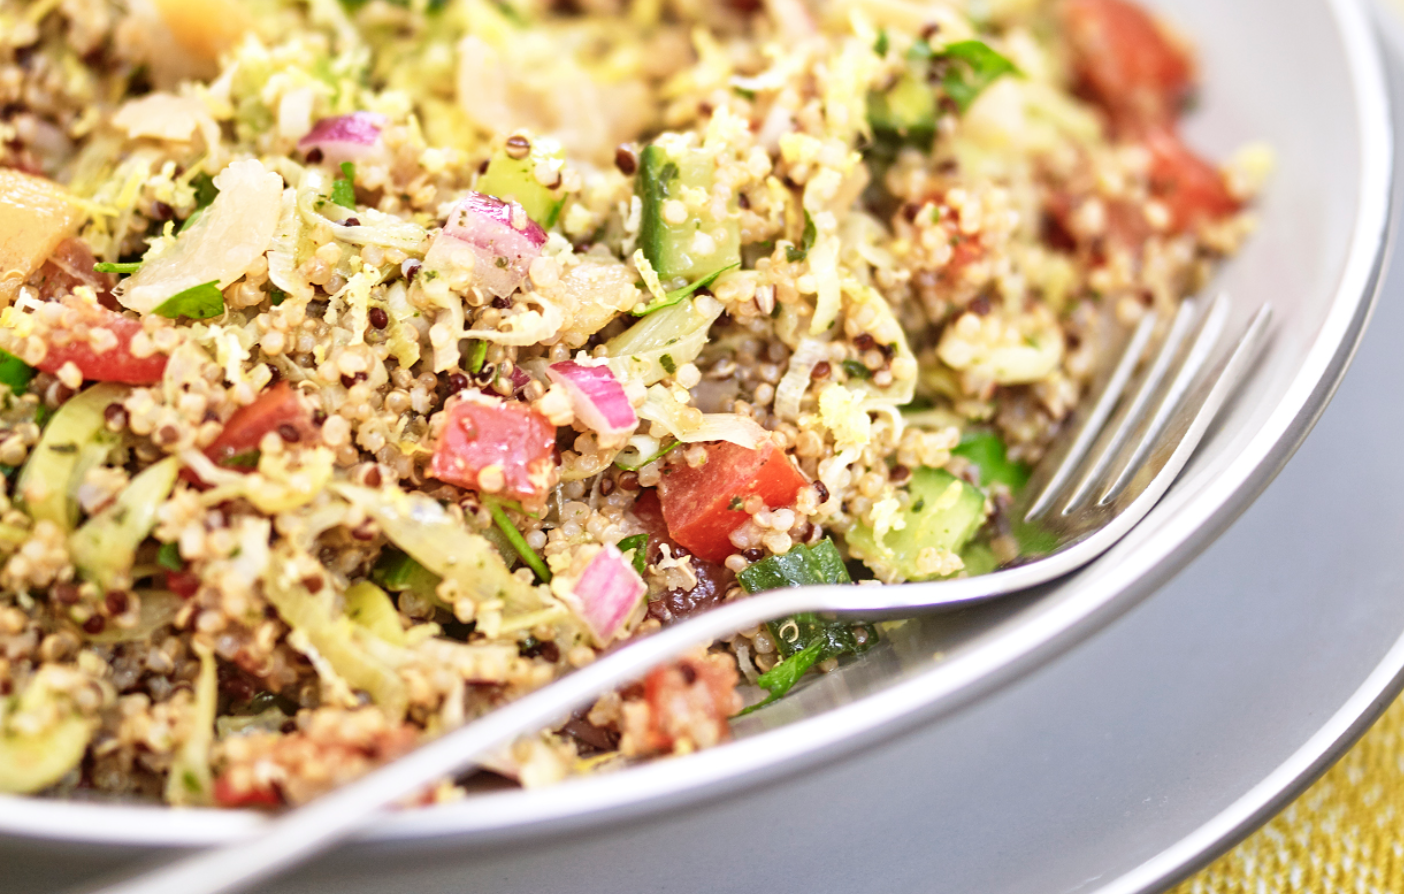 Quinoa Tabbouleh with Shredded Leeks and Preserved Lemon